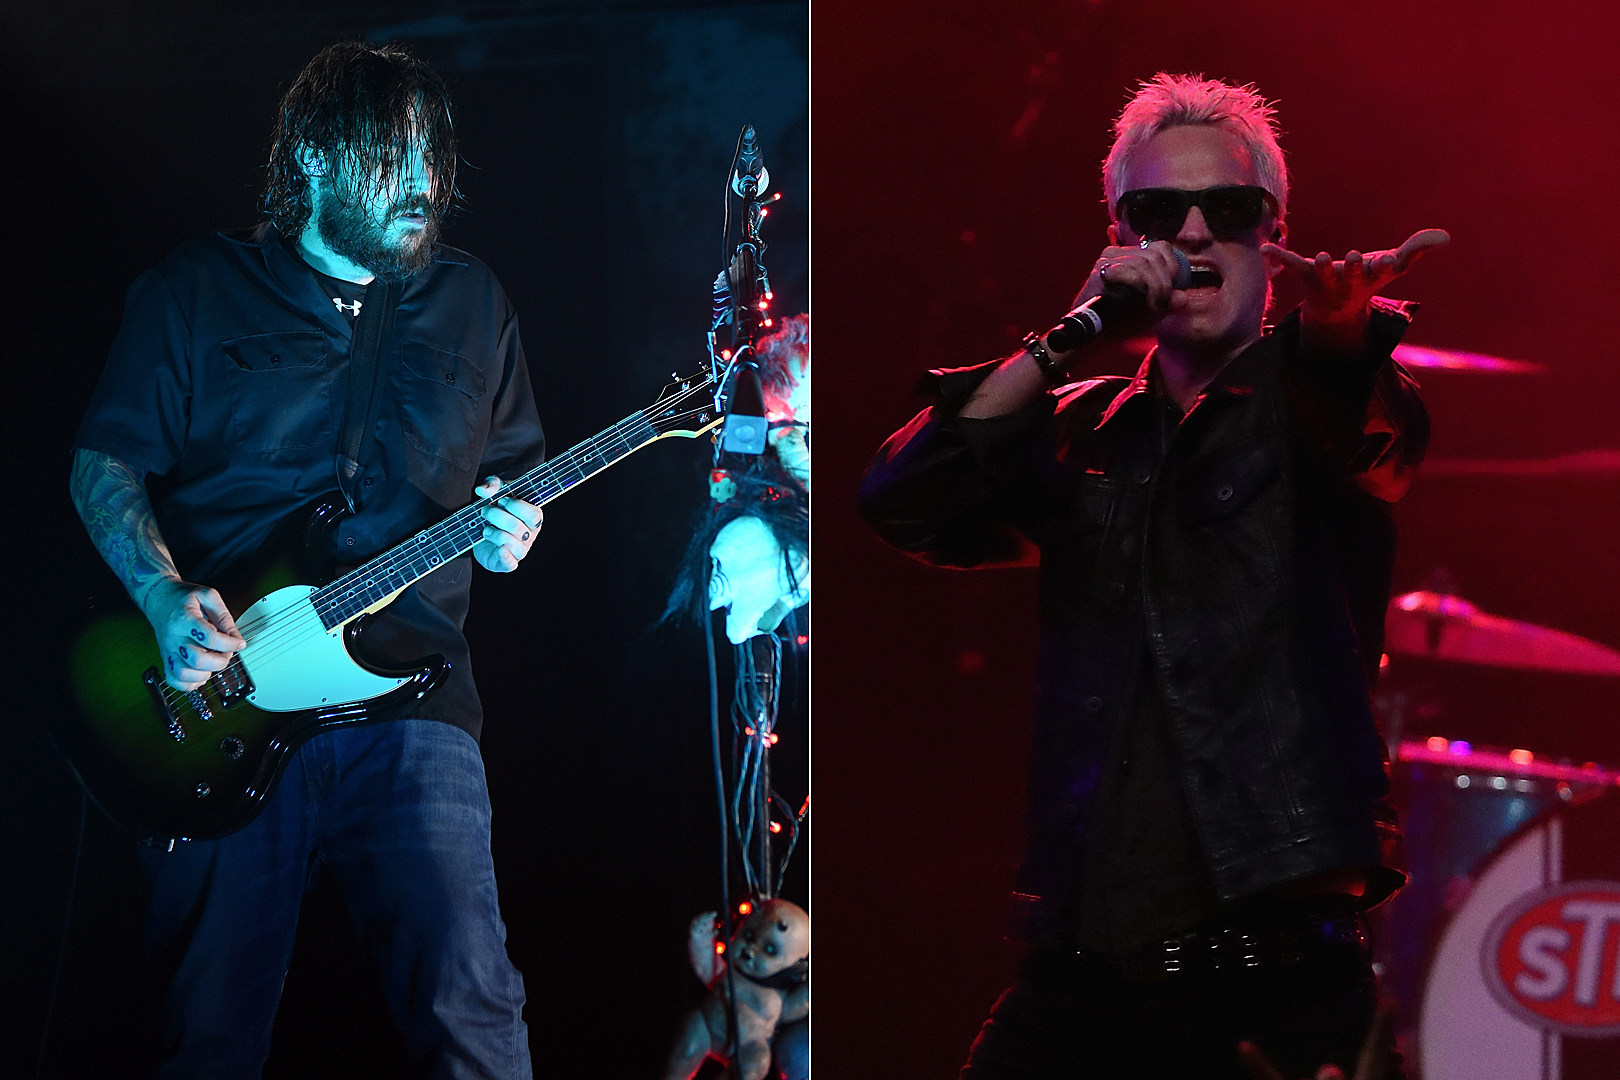 Seether Tour 2020.Seether Looking Ahead To 2020 Album Release